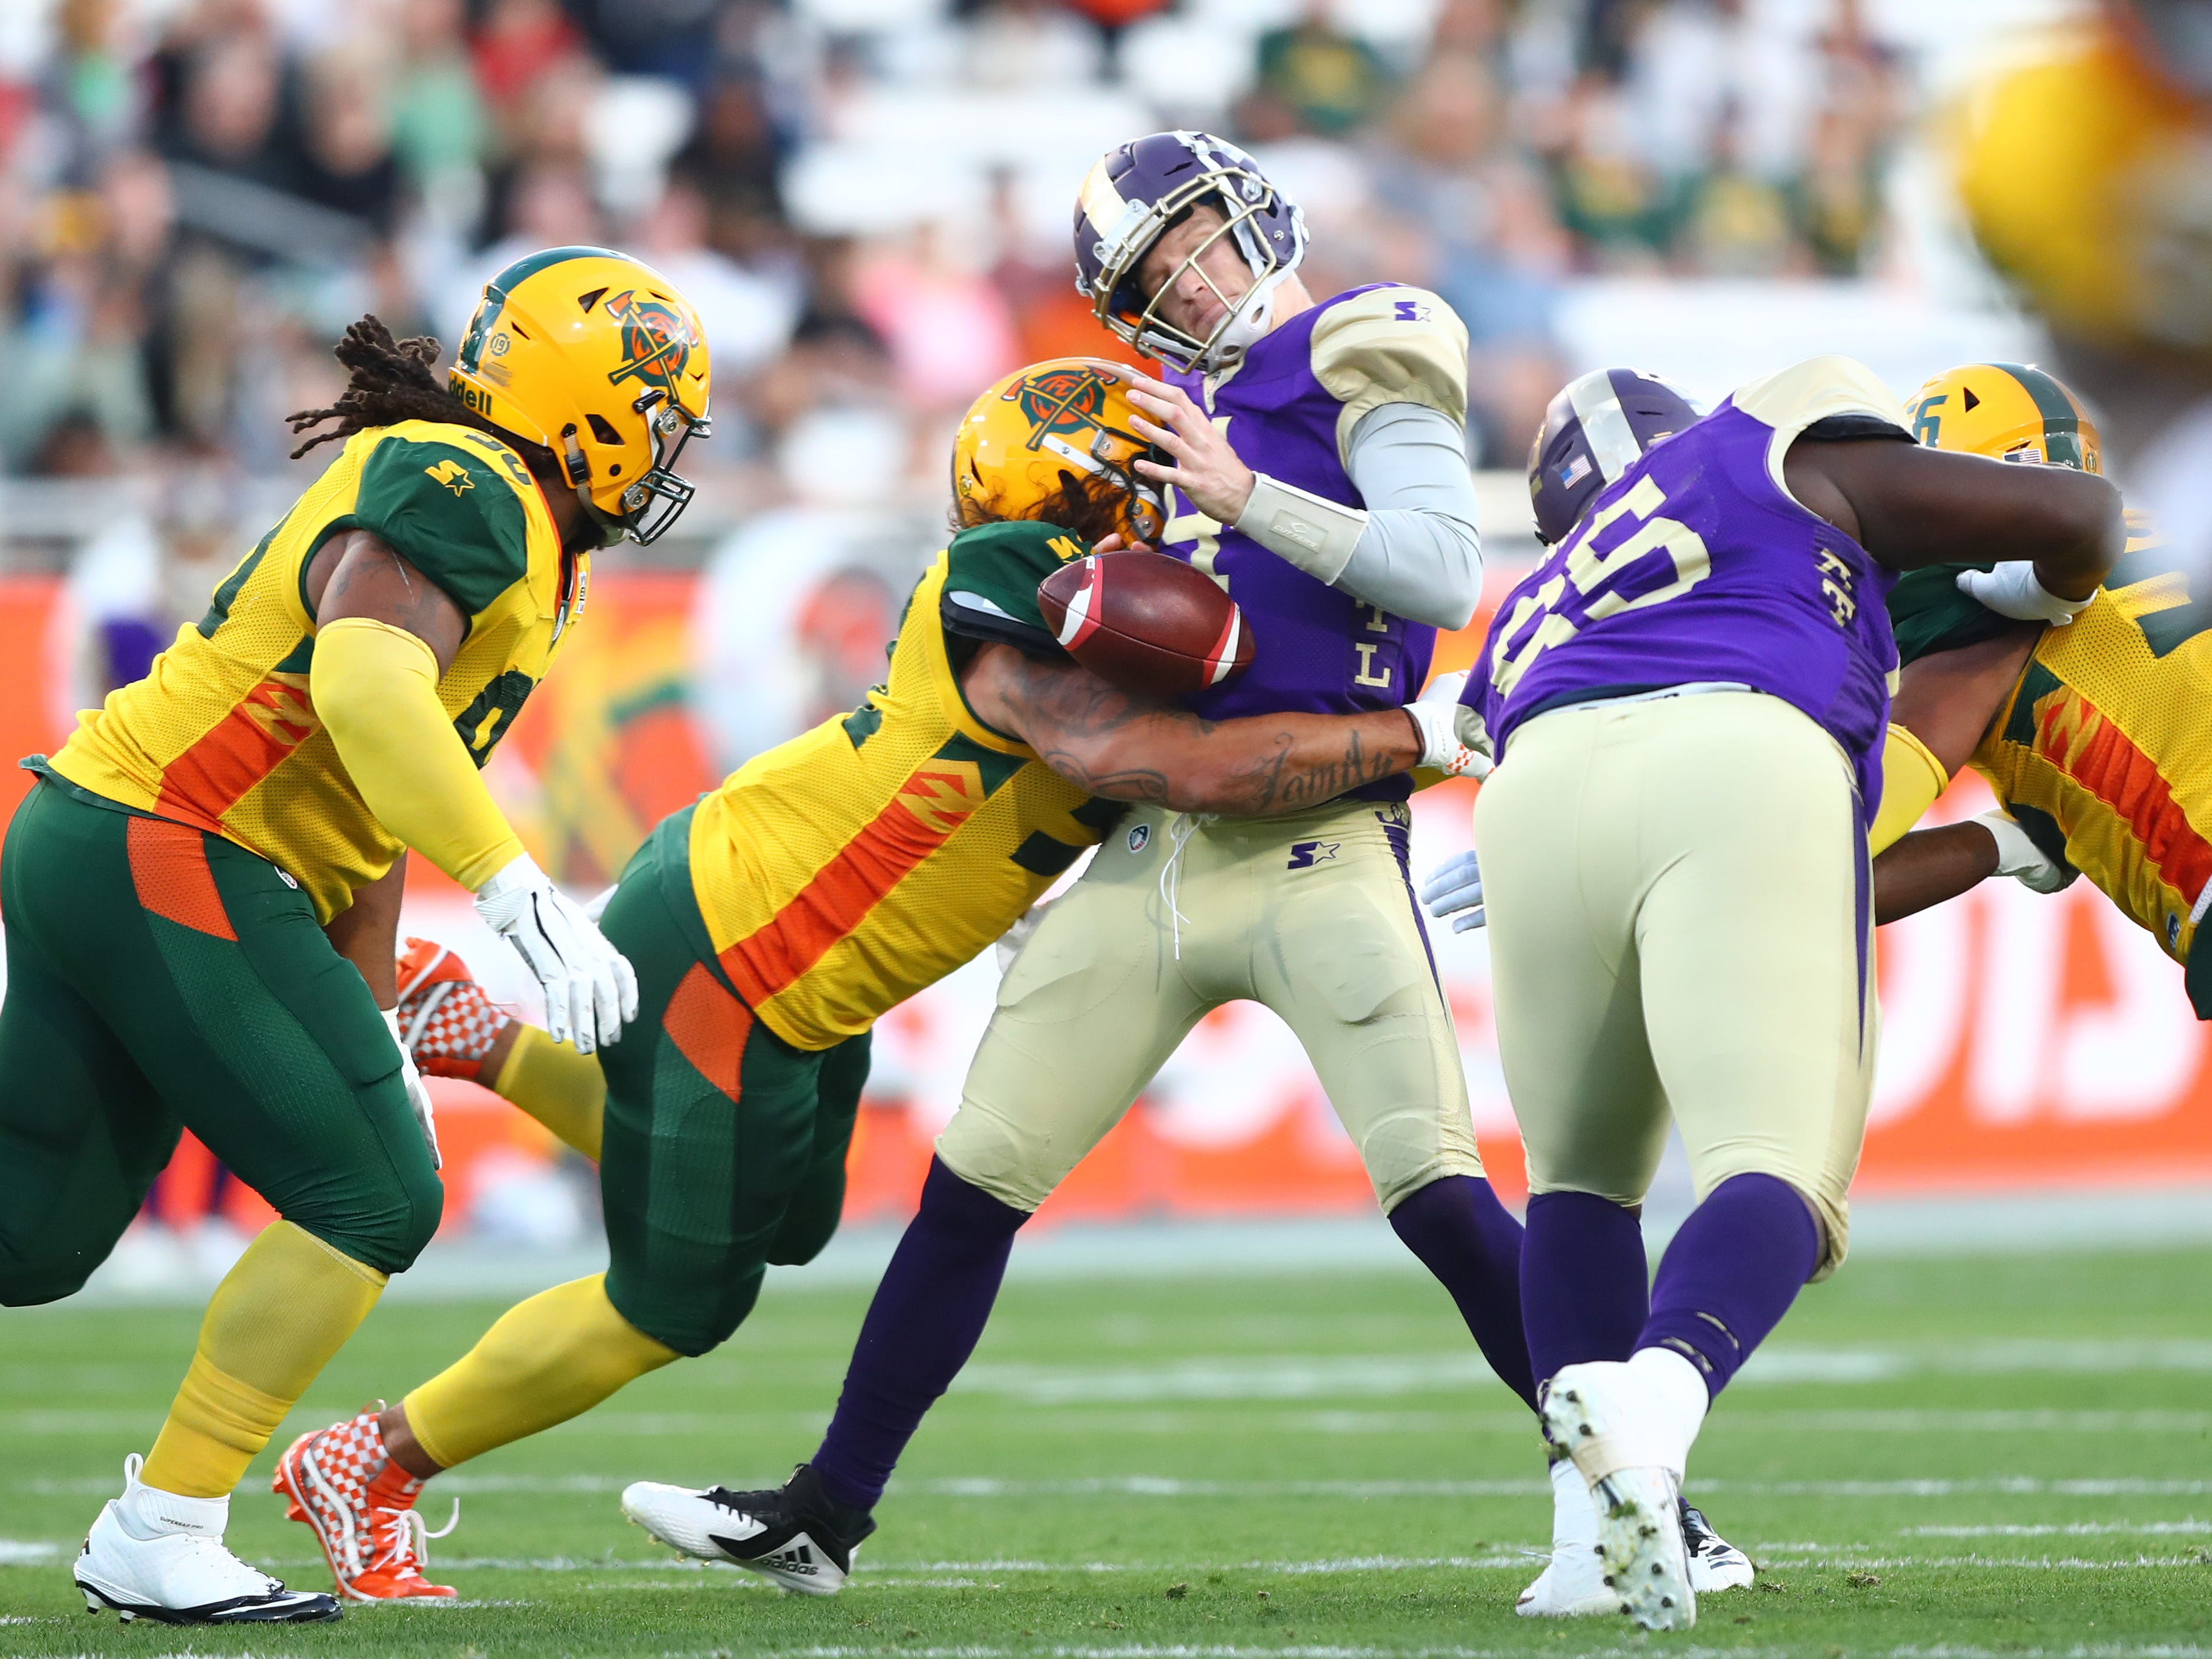 Mar 3, 2019; Tempe, AZ, USA; Atlanta Legends quarterback Matt Simms fumbles the ball as he is sacked by Arizona Hotshots linebacker Carl Bradford during the first quarter of an AAF football game at Sun Devil Stadium.